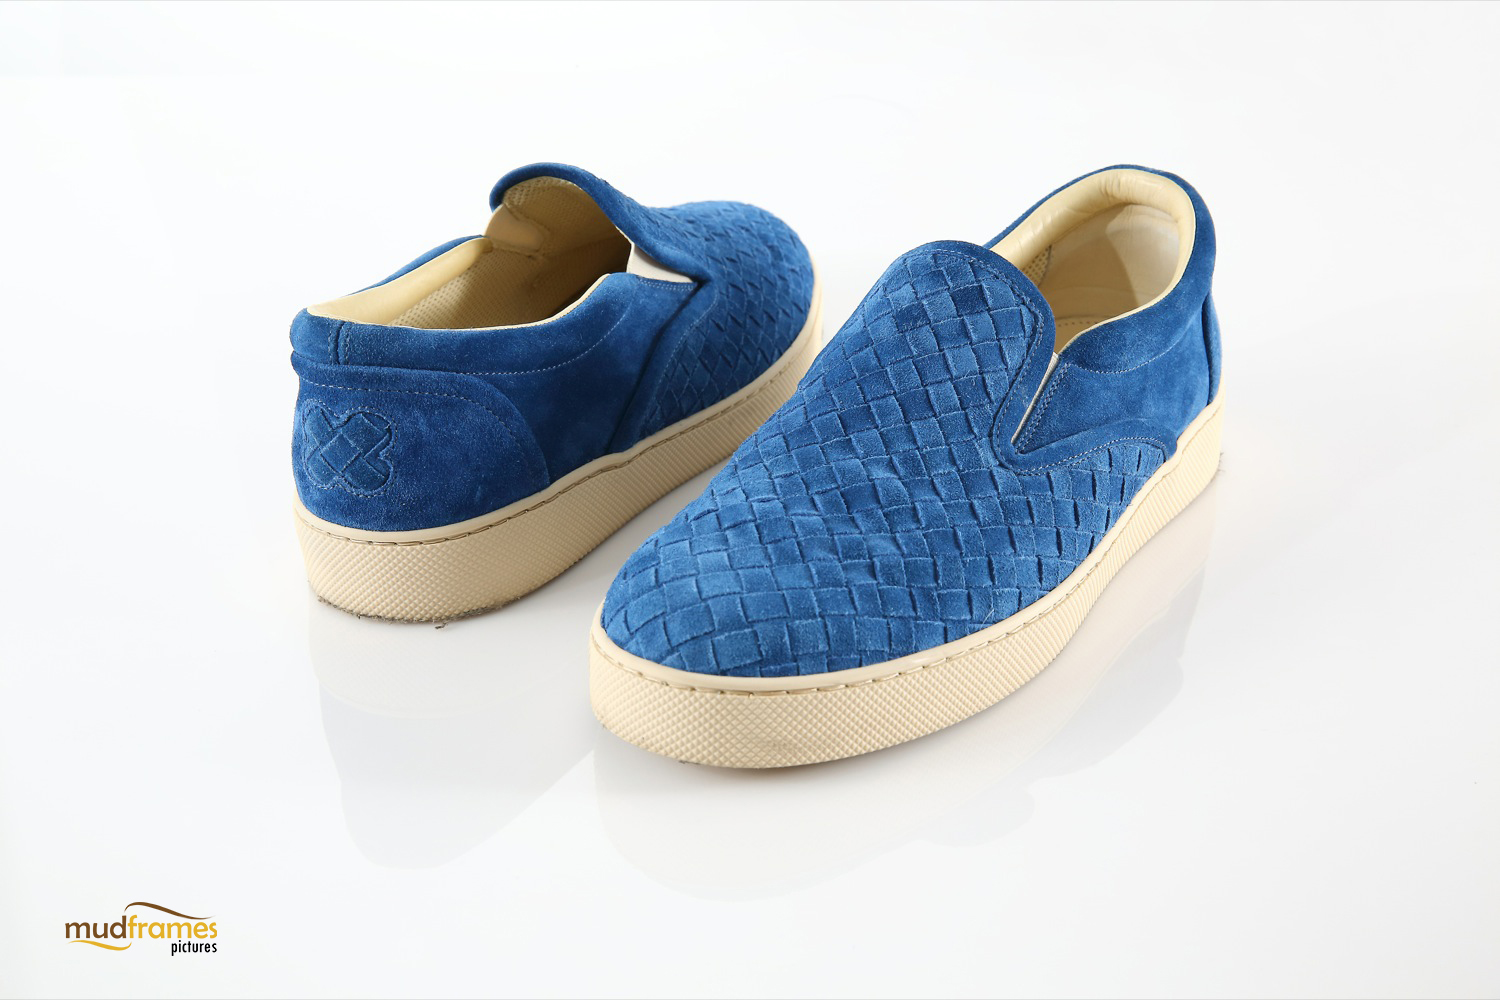 Blue Bottega Veneta shoes on white background